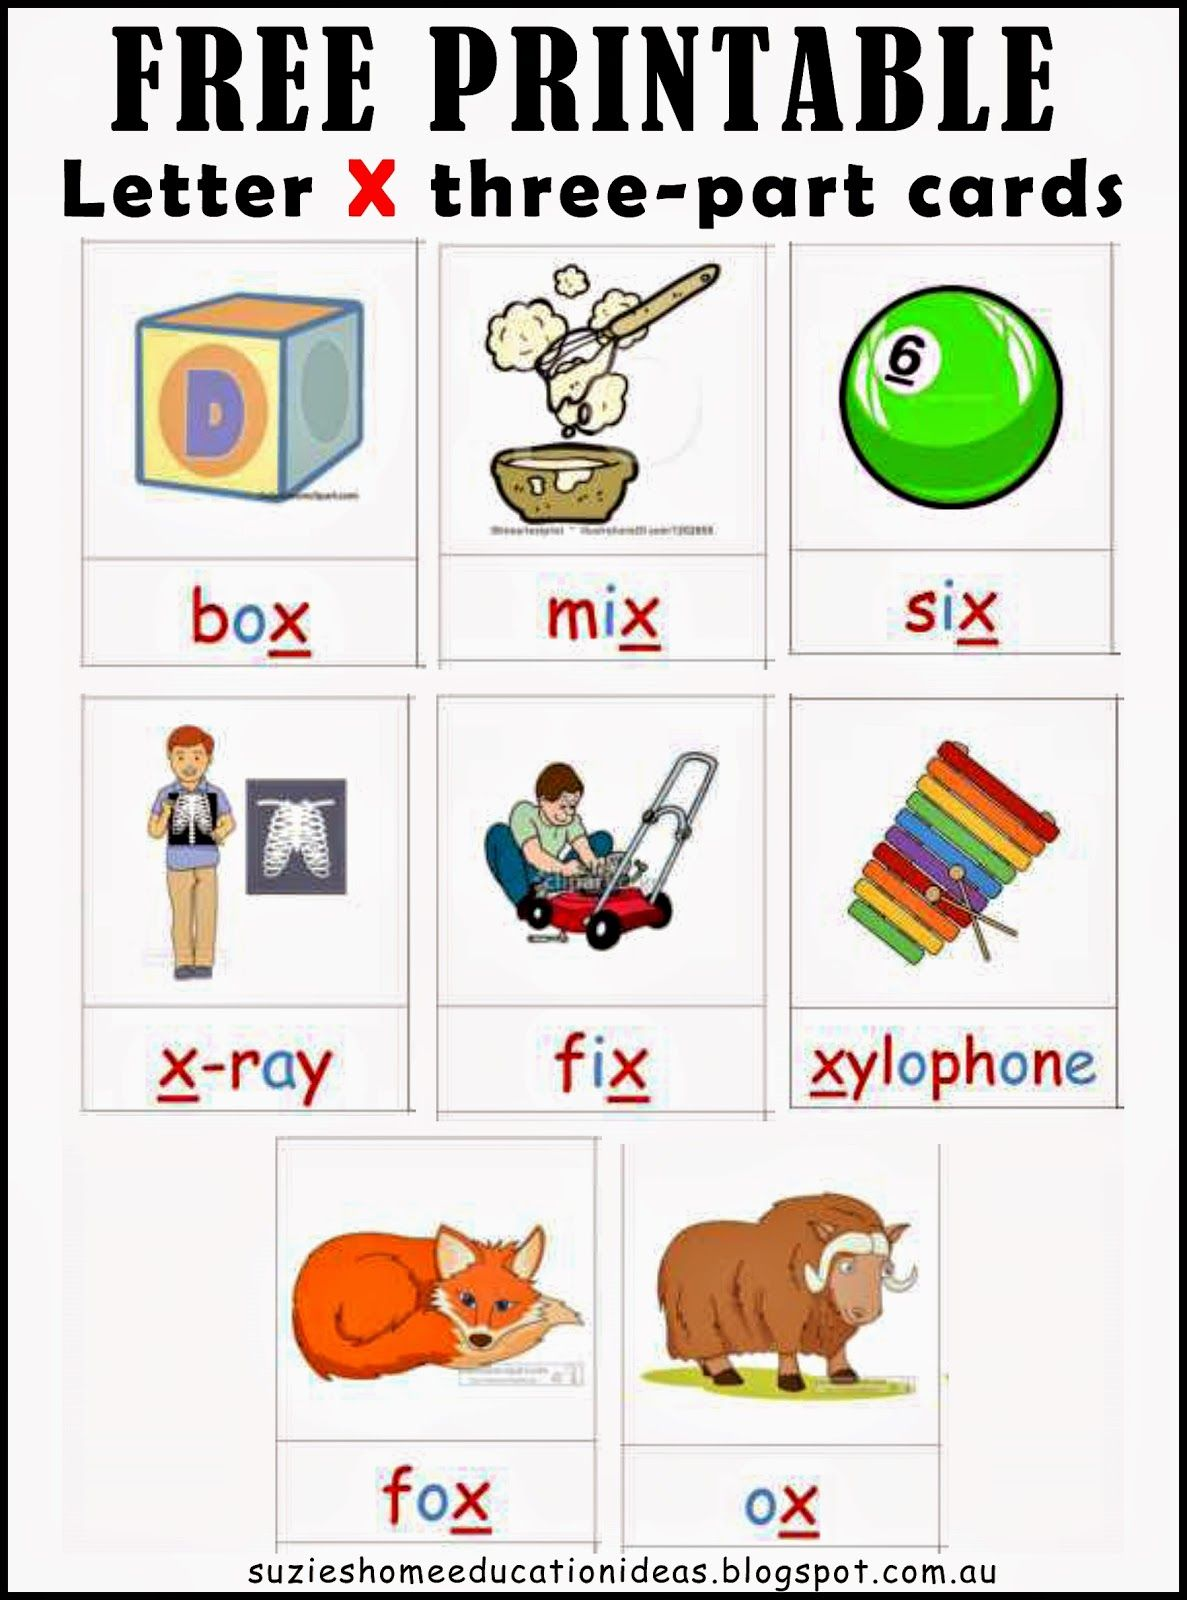 Letter X Printable Cards and Activity Ideas